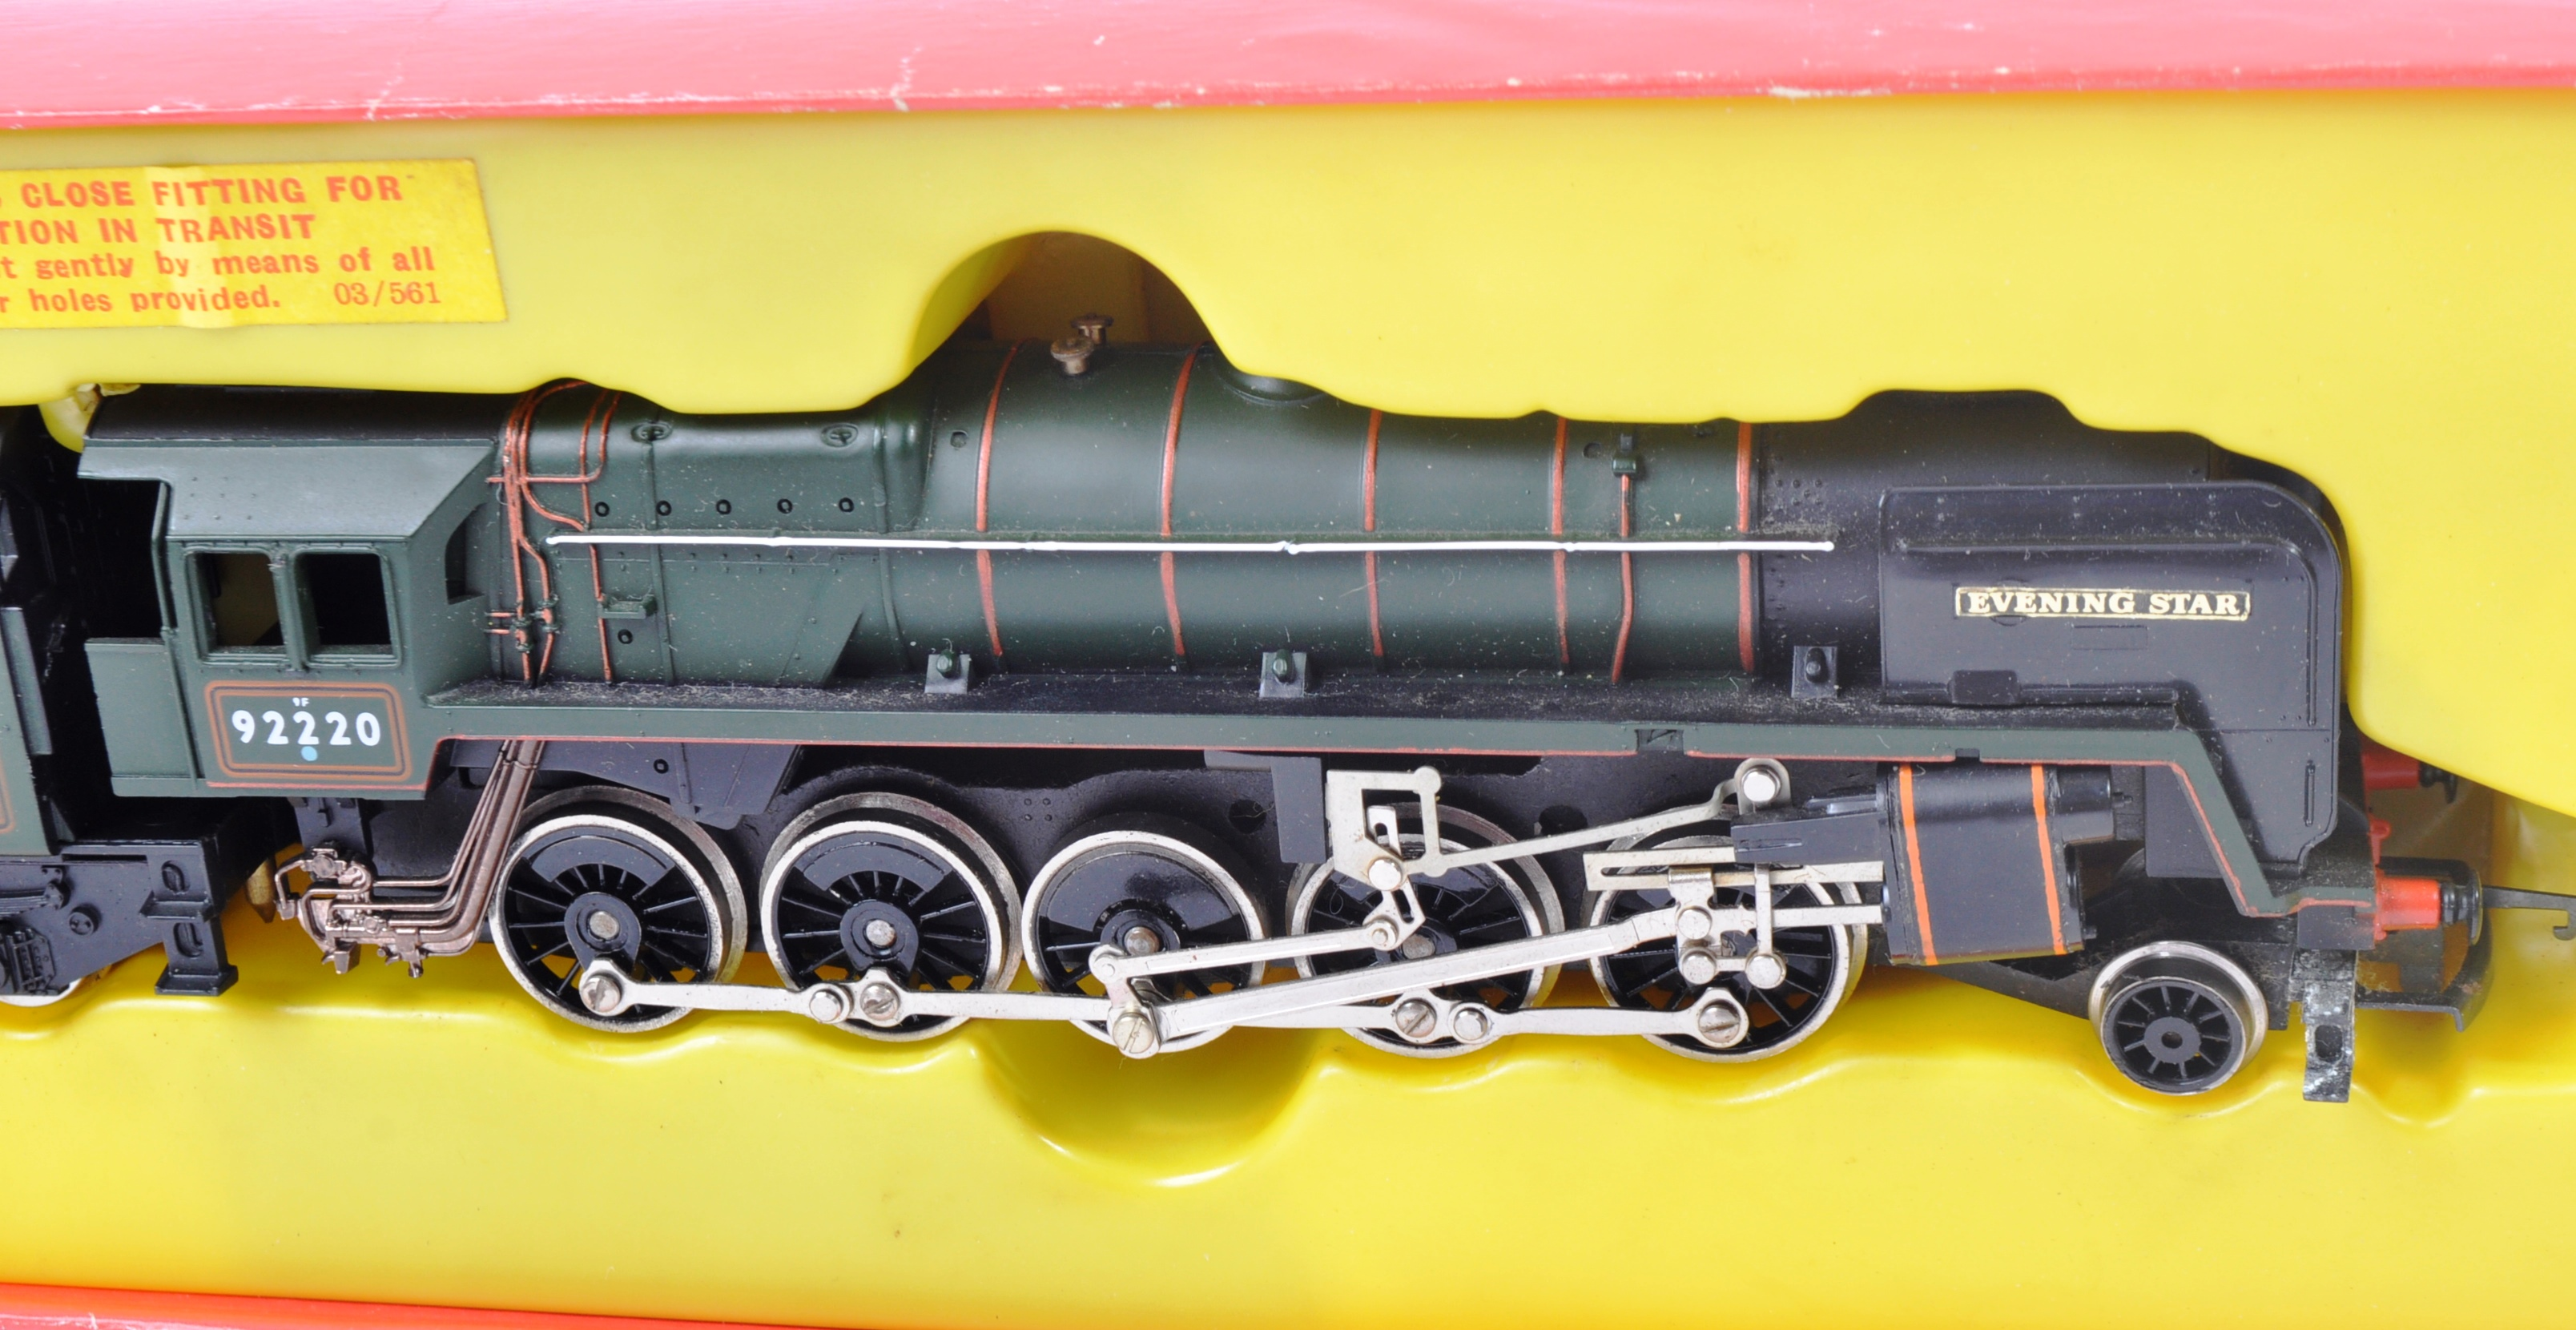 TWO VINTAGE HORNBY & TRIANG MODEL RAILWAY TRAINSET LOCOMOTIVES - Image 4 of 6